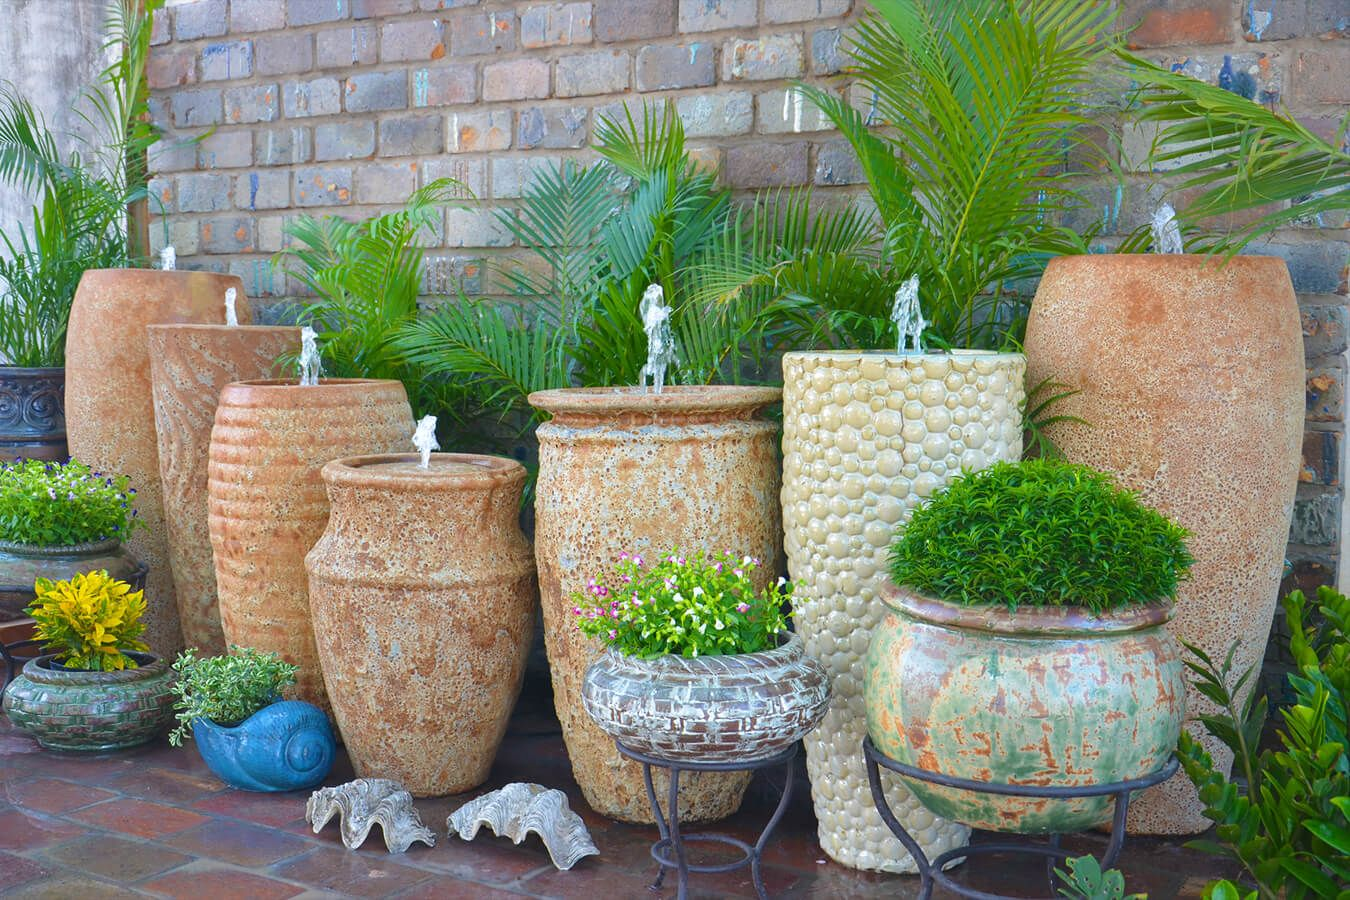 Where To Buy Large Pots For Plants Part - 20: Wholesale Vietnamese Garden Pottery, Large Pots, Outdoor Planters Vases And  Urns, Pot Fountains